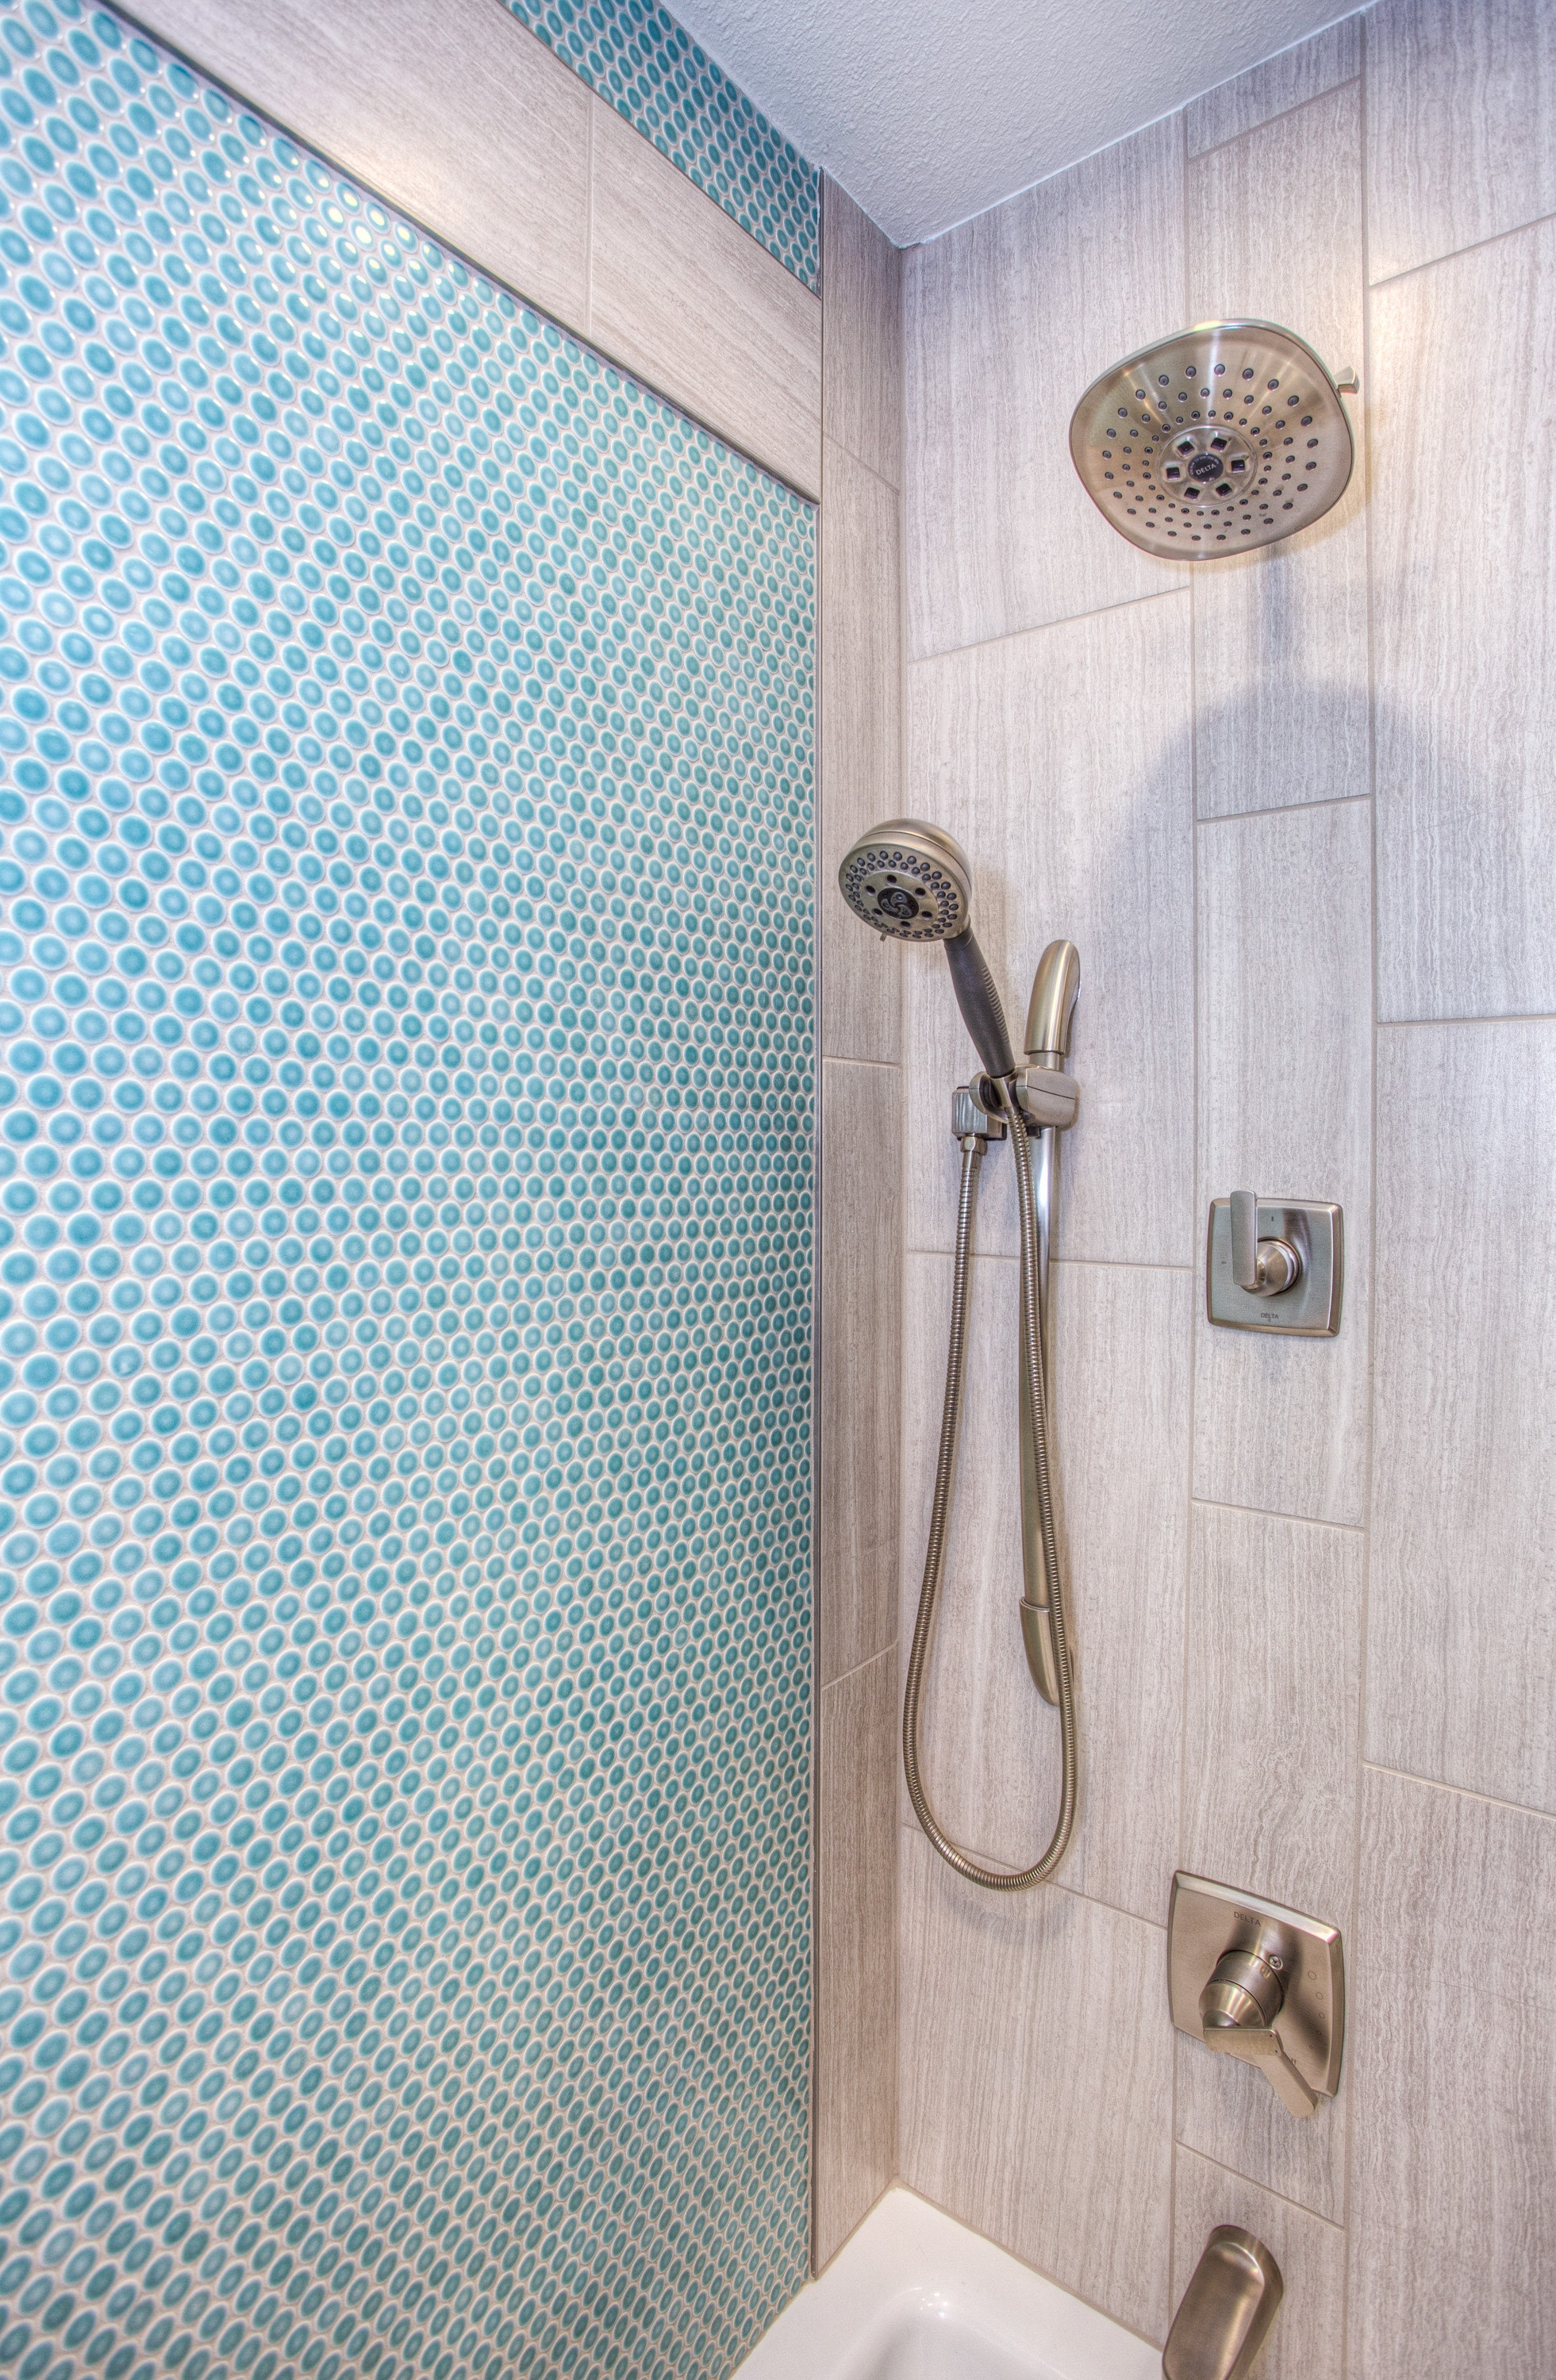 What Causes Your Shower Head to Drip